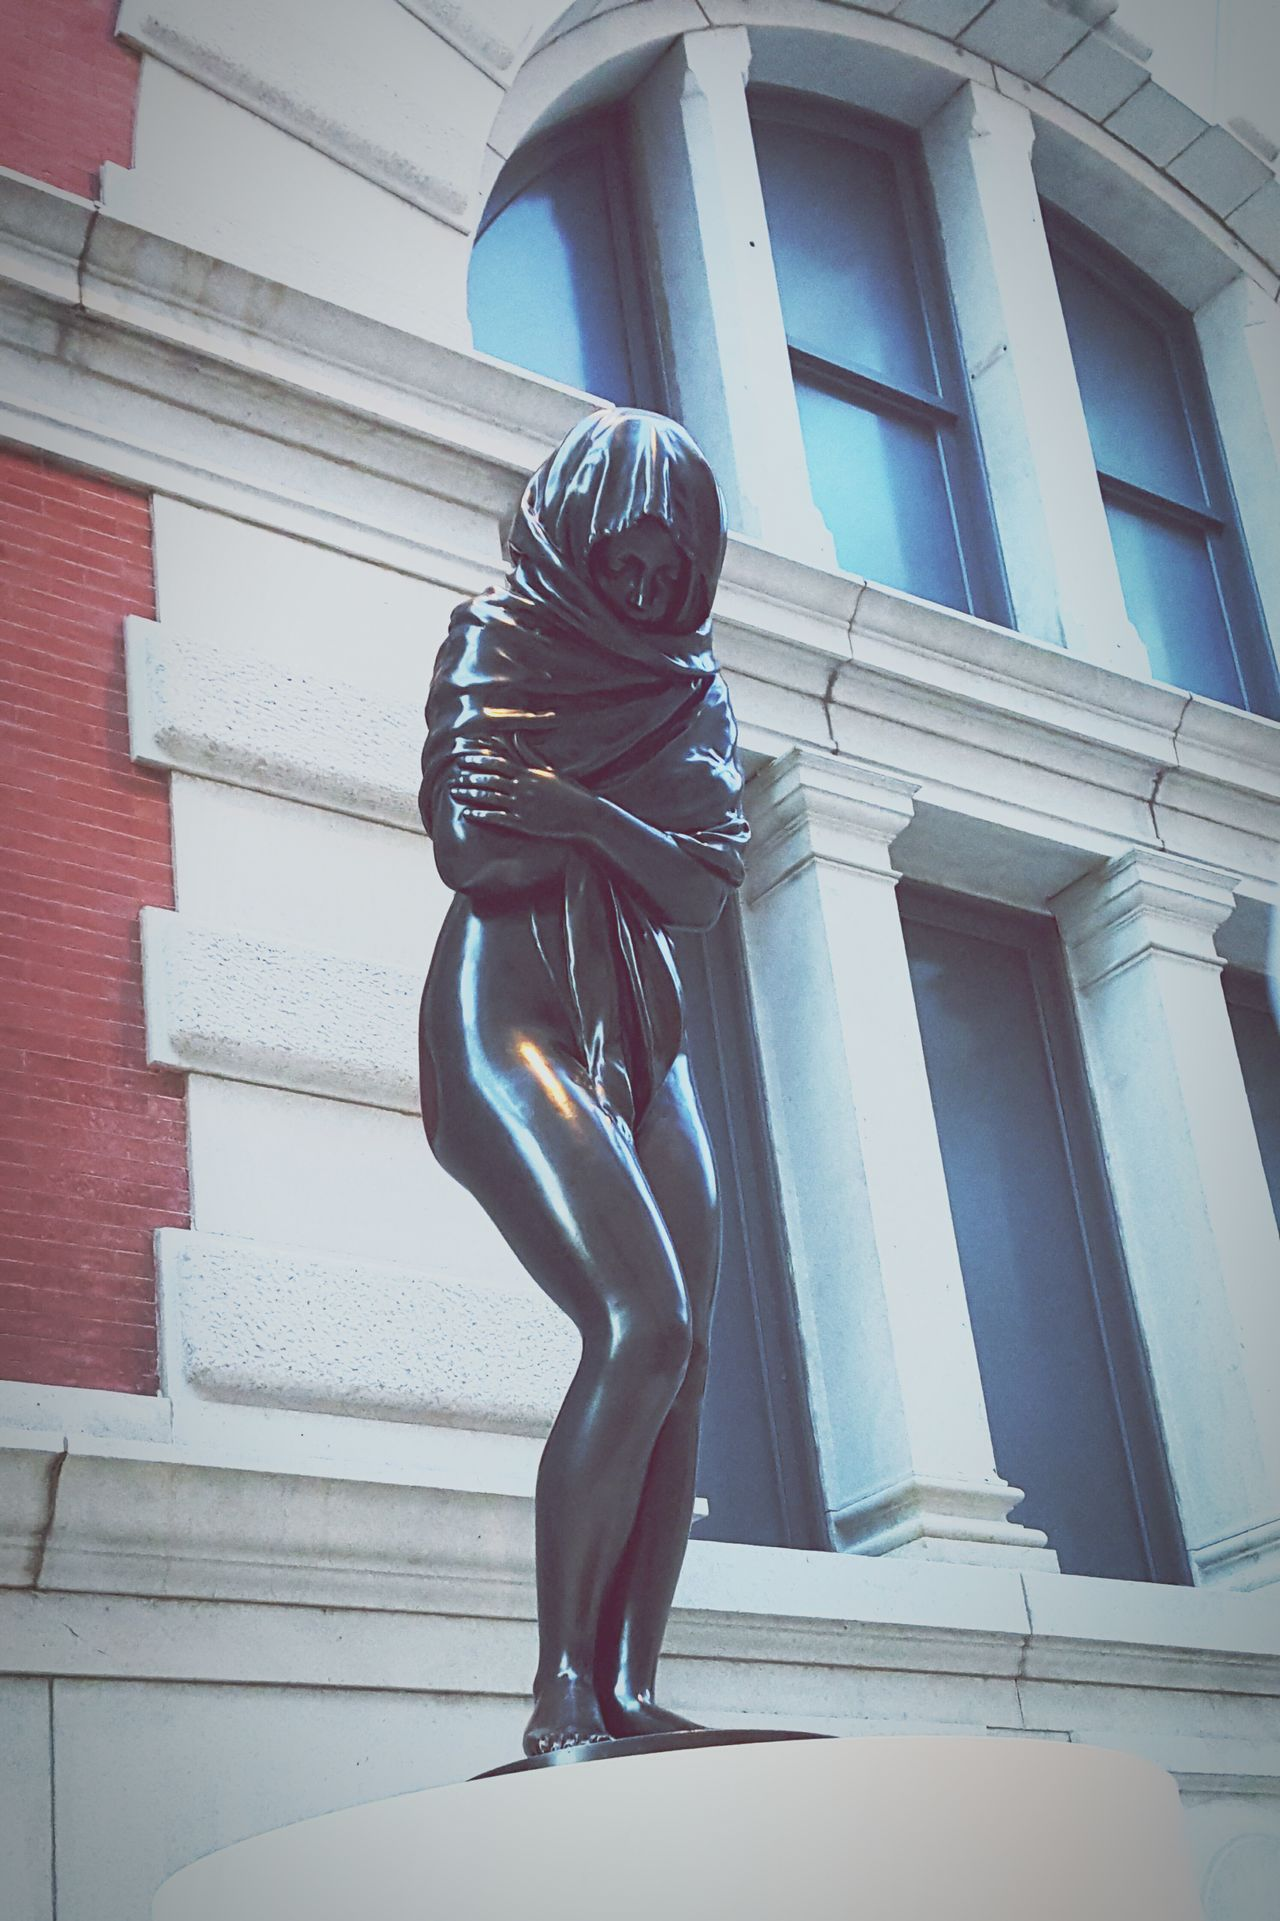 Posing Cold Feeling Sick Lady Sculpture Naked Woman Woman Sculptures Cold Woman Italian Art